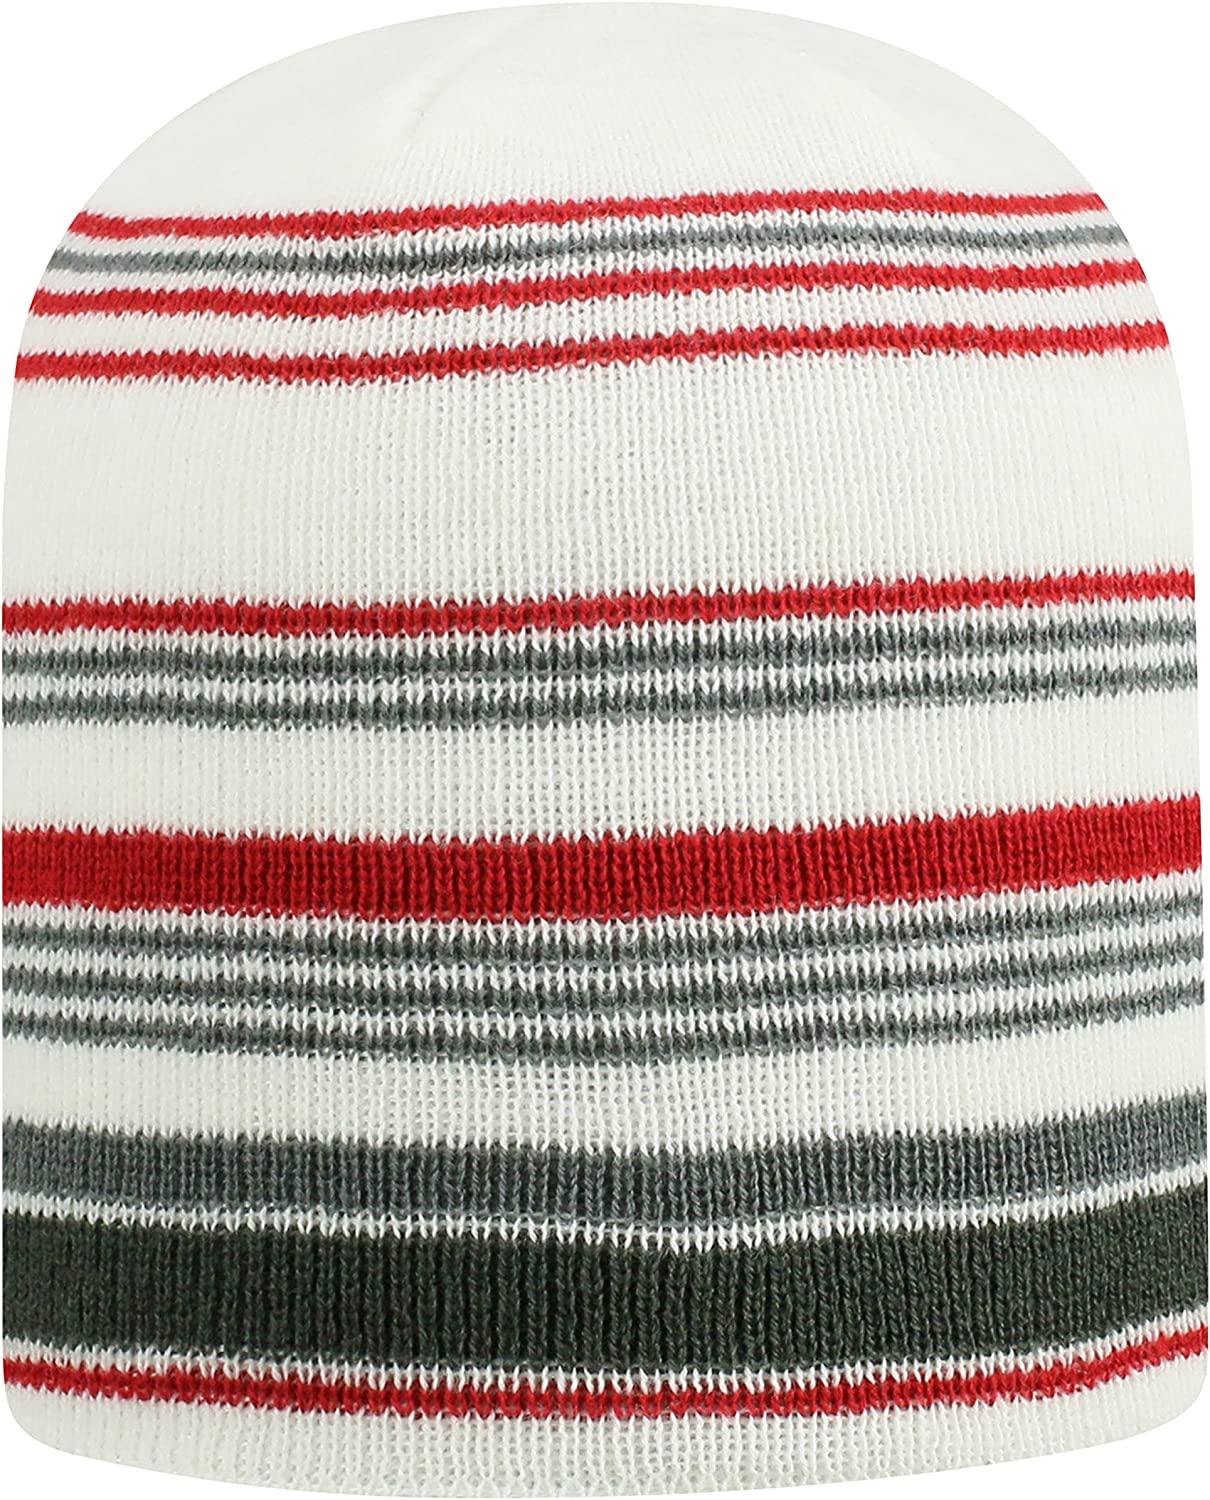 Top of the World Alabama Crimson Tide Official NCAA Uncuffed Knit Channel Stocking Stretch Sock Hat Cap Beanie 480329